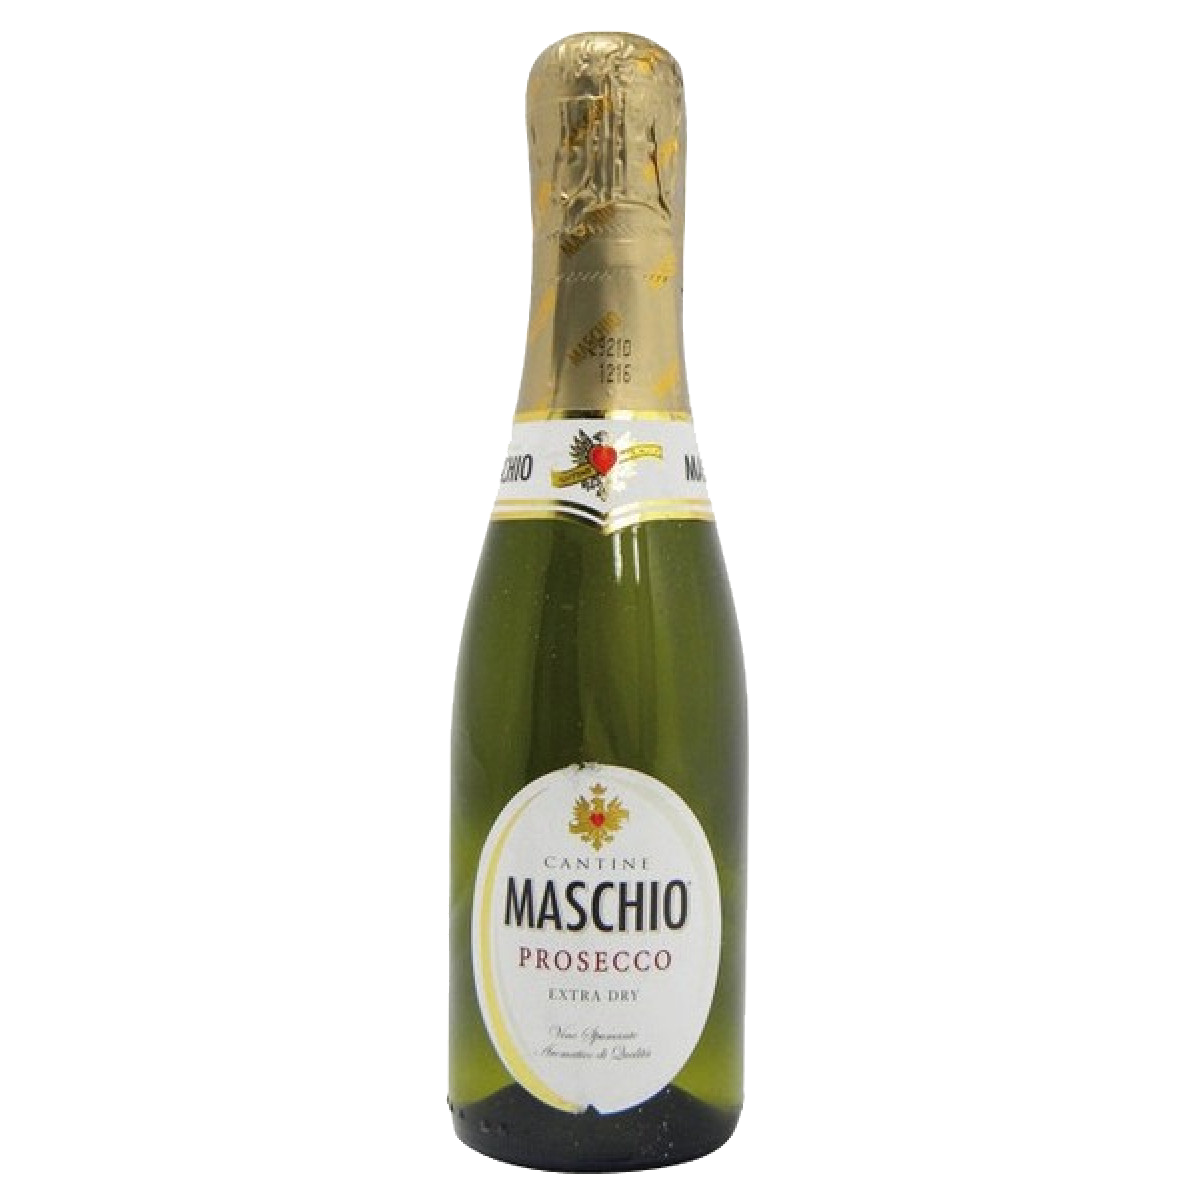 Mini Maschino Prosecco Snipe 200ml